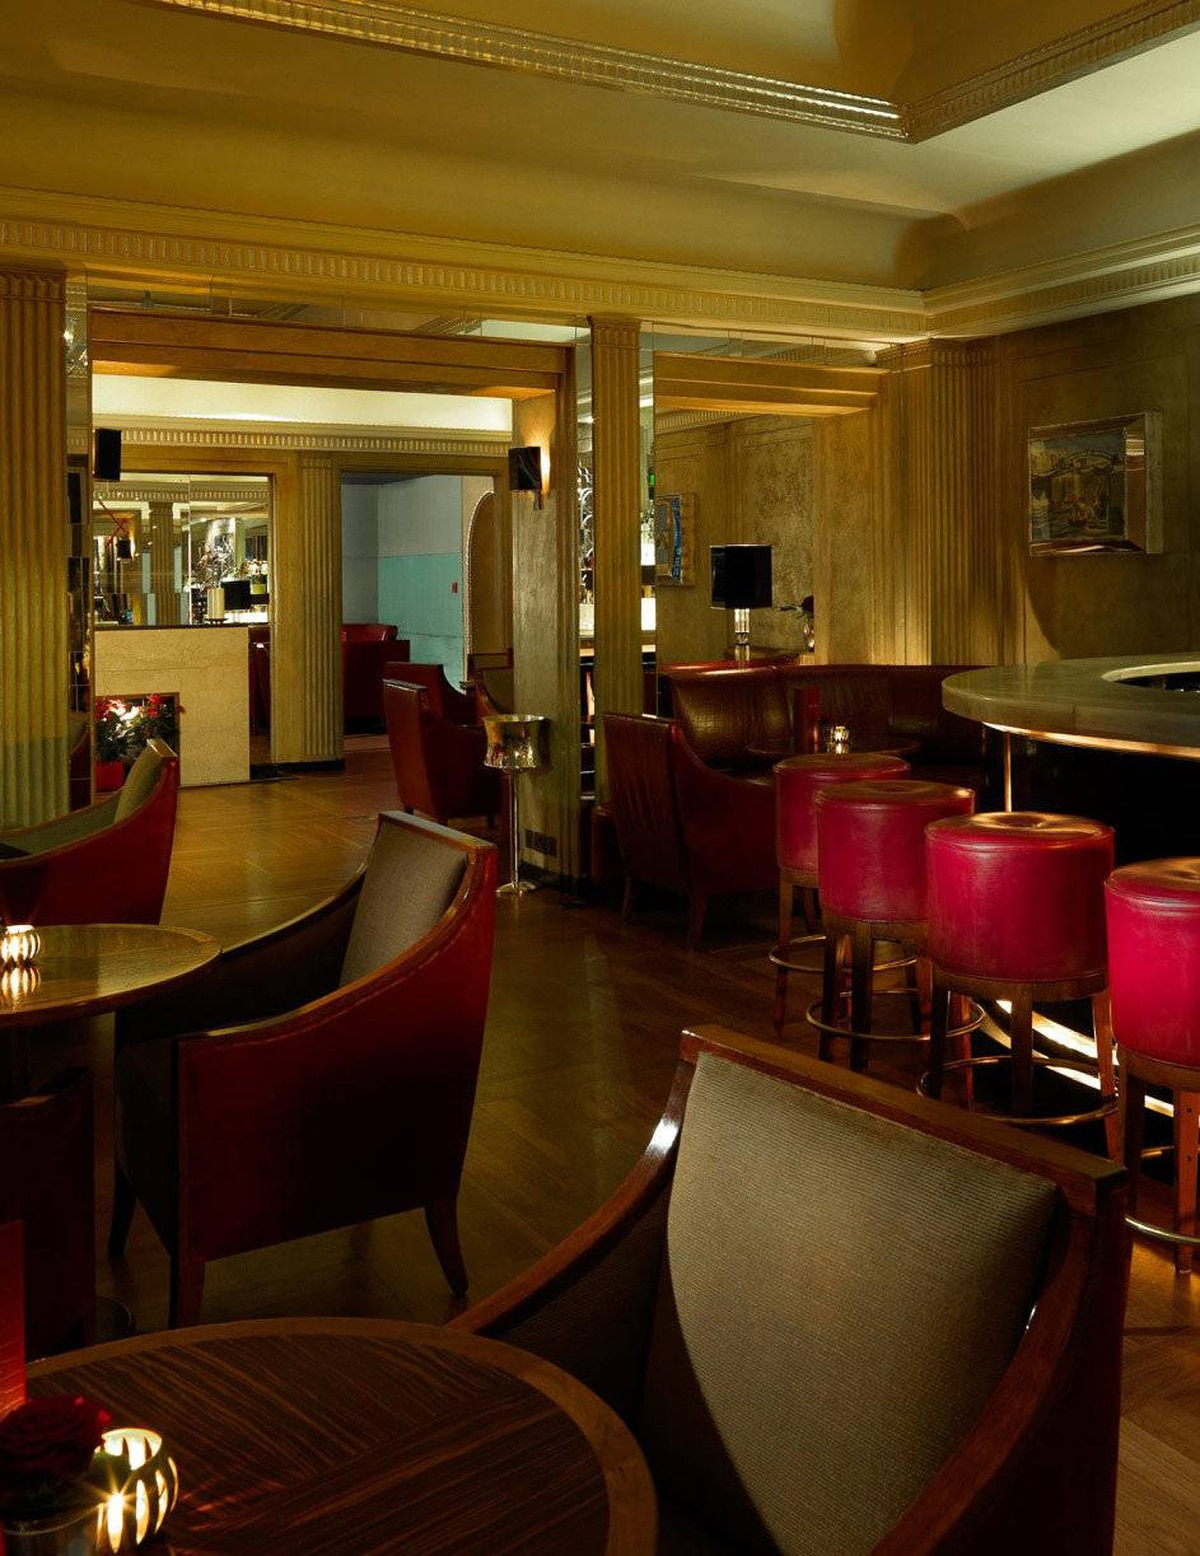 Claridge's Bar at Claridge's: This Mayfair hotel bar is worth a stop, if only to see how the Other Half lives while on holiday - the Other Half being those of aristocratic stock. With its origins dating to 1812, the hotel has long been referred to as an extension of Buck House (Buckingham Palace). And it has a hushed, I-feel-like-I'm-in-a-palace atmosphere. Wear your best shoes. Coif your hair. Polish up your manners. This is not a place for a boisterous gathering. Once, long ago, I stayed here. The staff packed up our suitcases to move us to another room. The King and Queen of Spain were visiting, and they needed a whole floor for their entourage. Oh, pardon me.